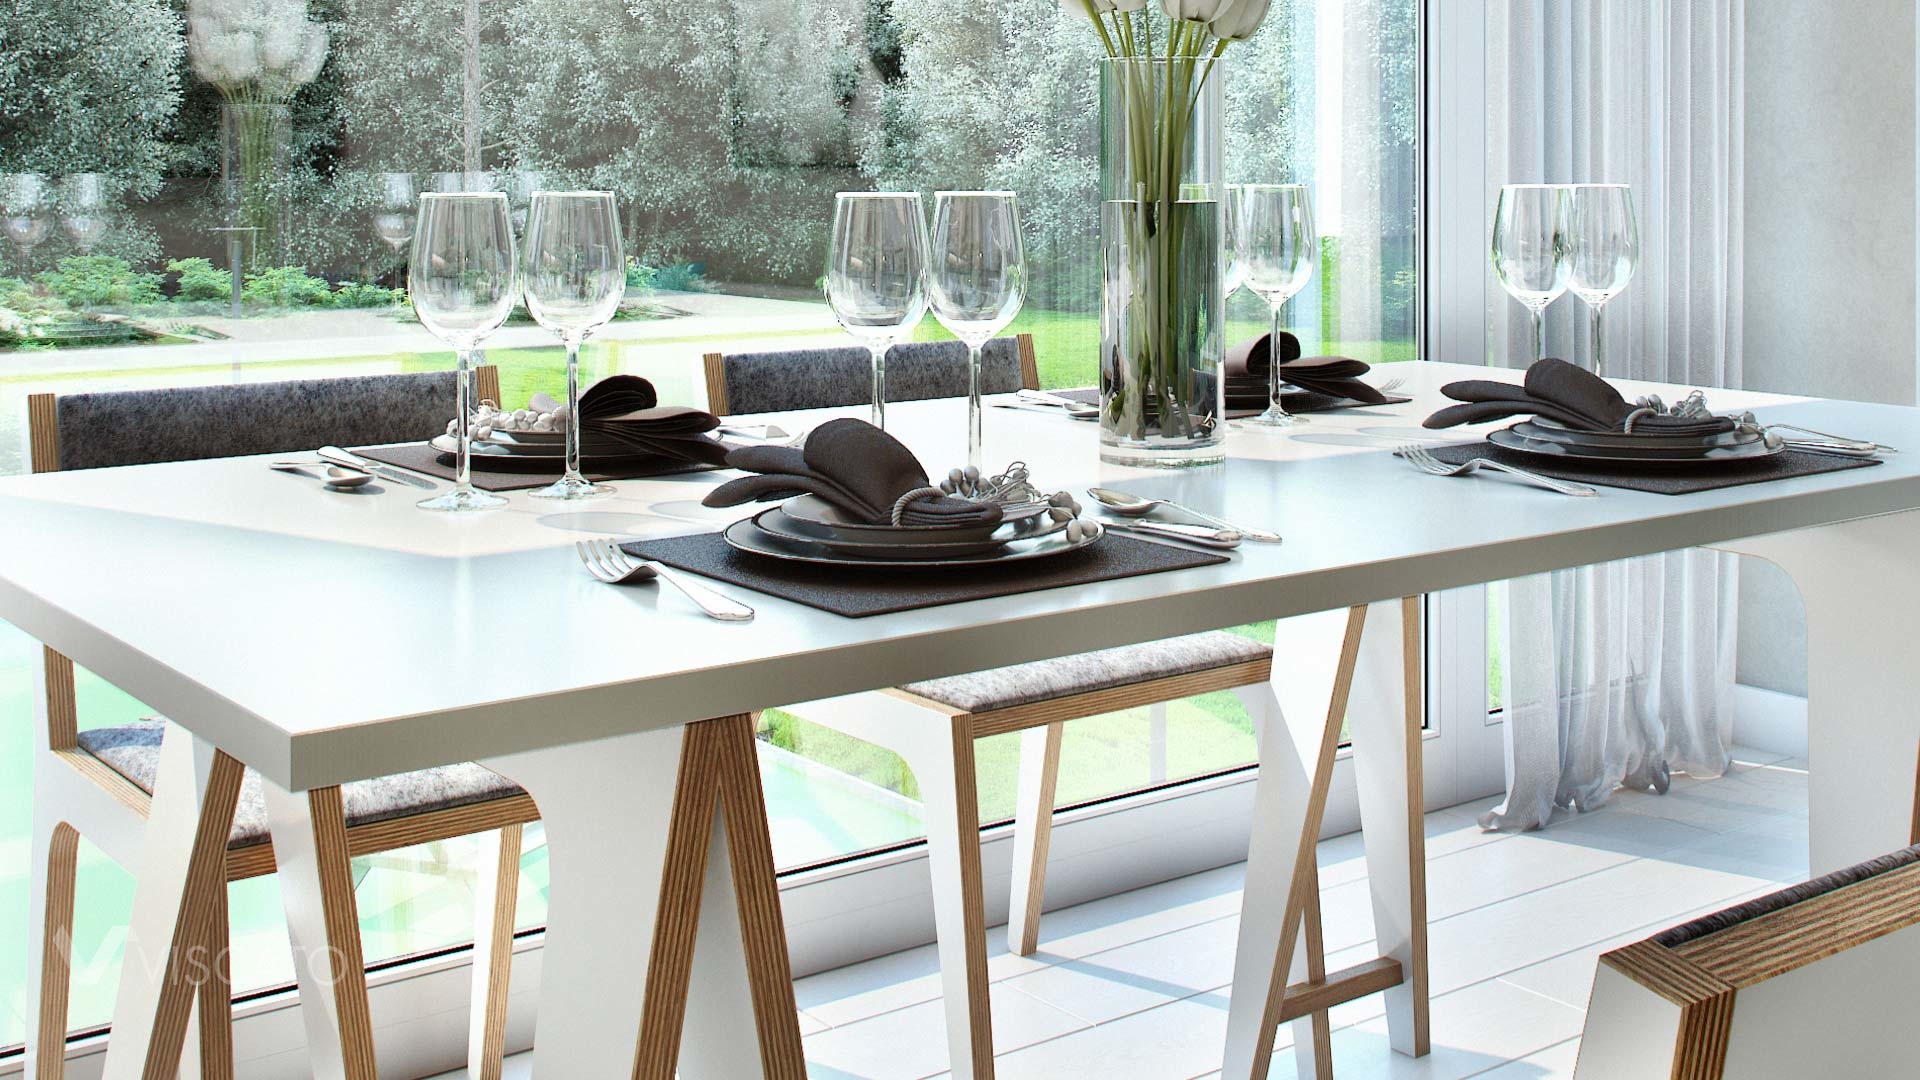 Interior 3d Visualization of modern scandinavian appartment- detail of table with chairs